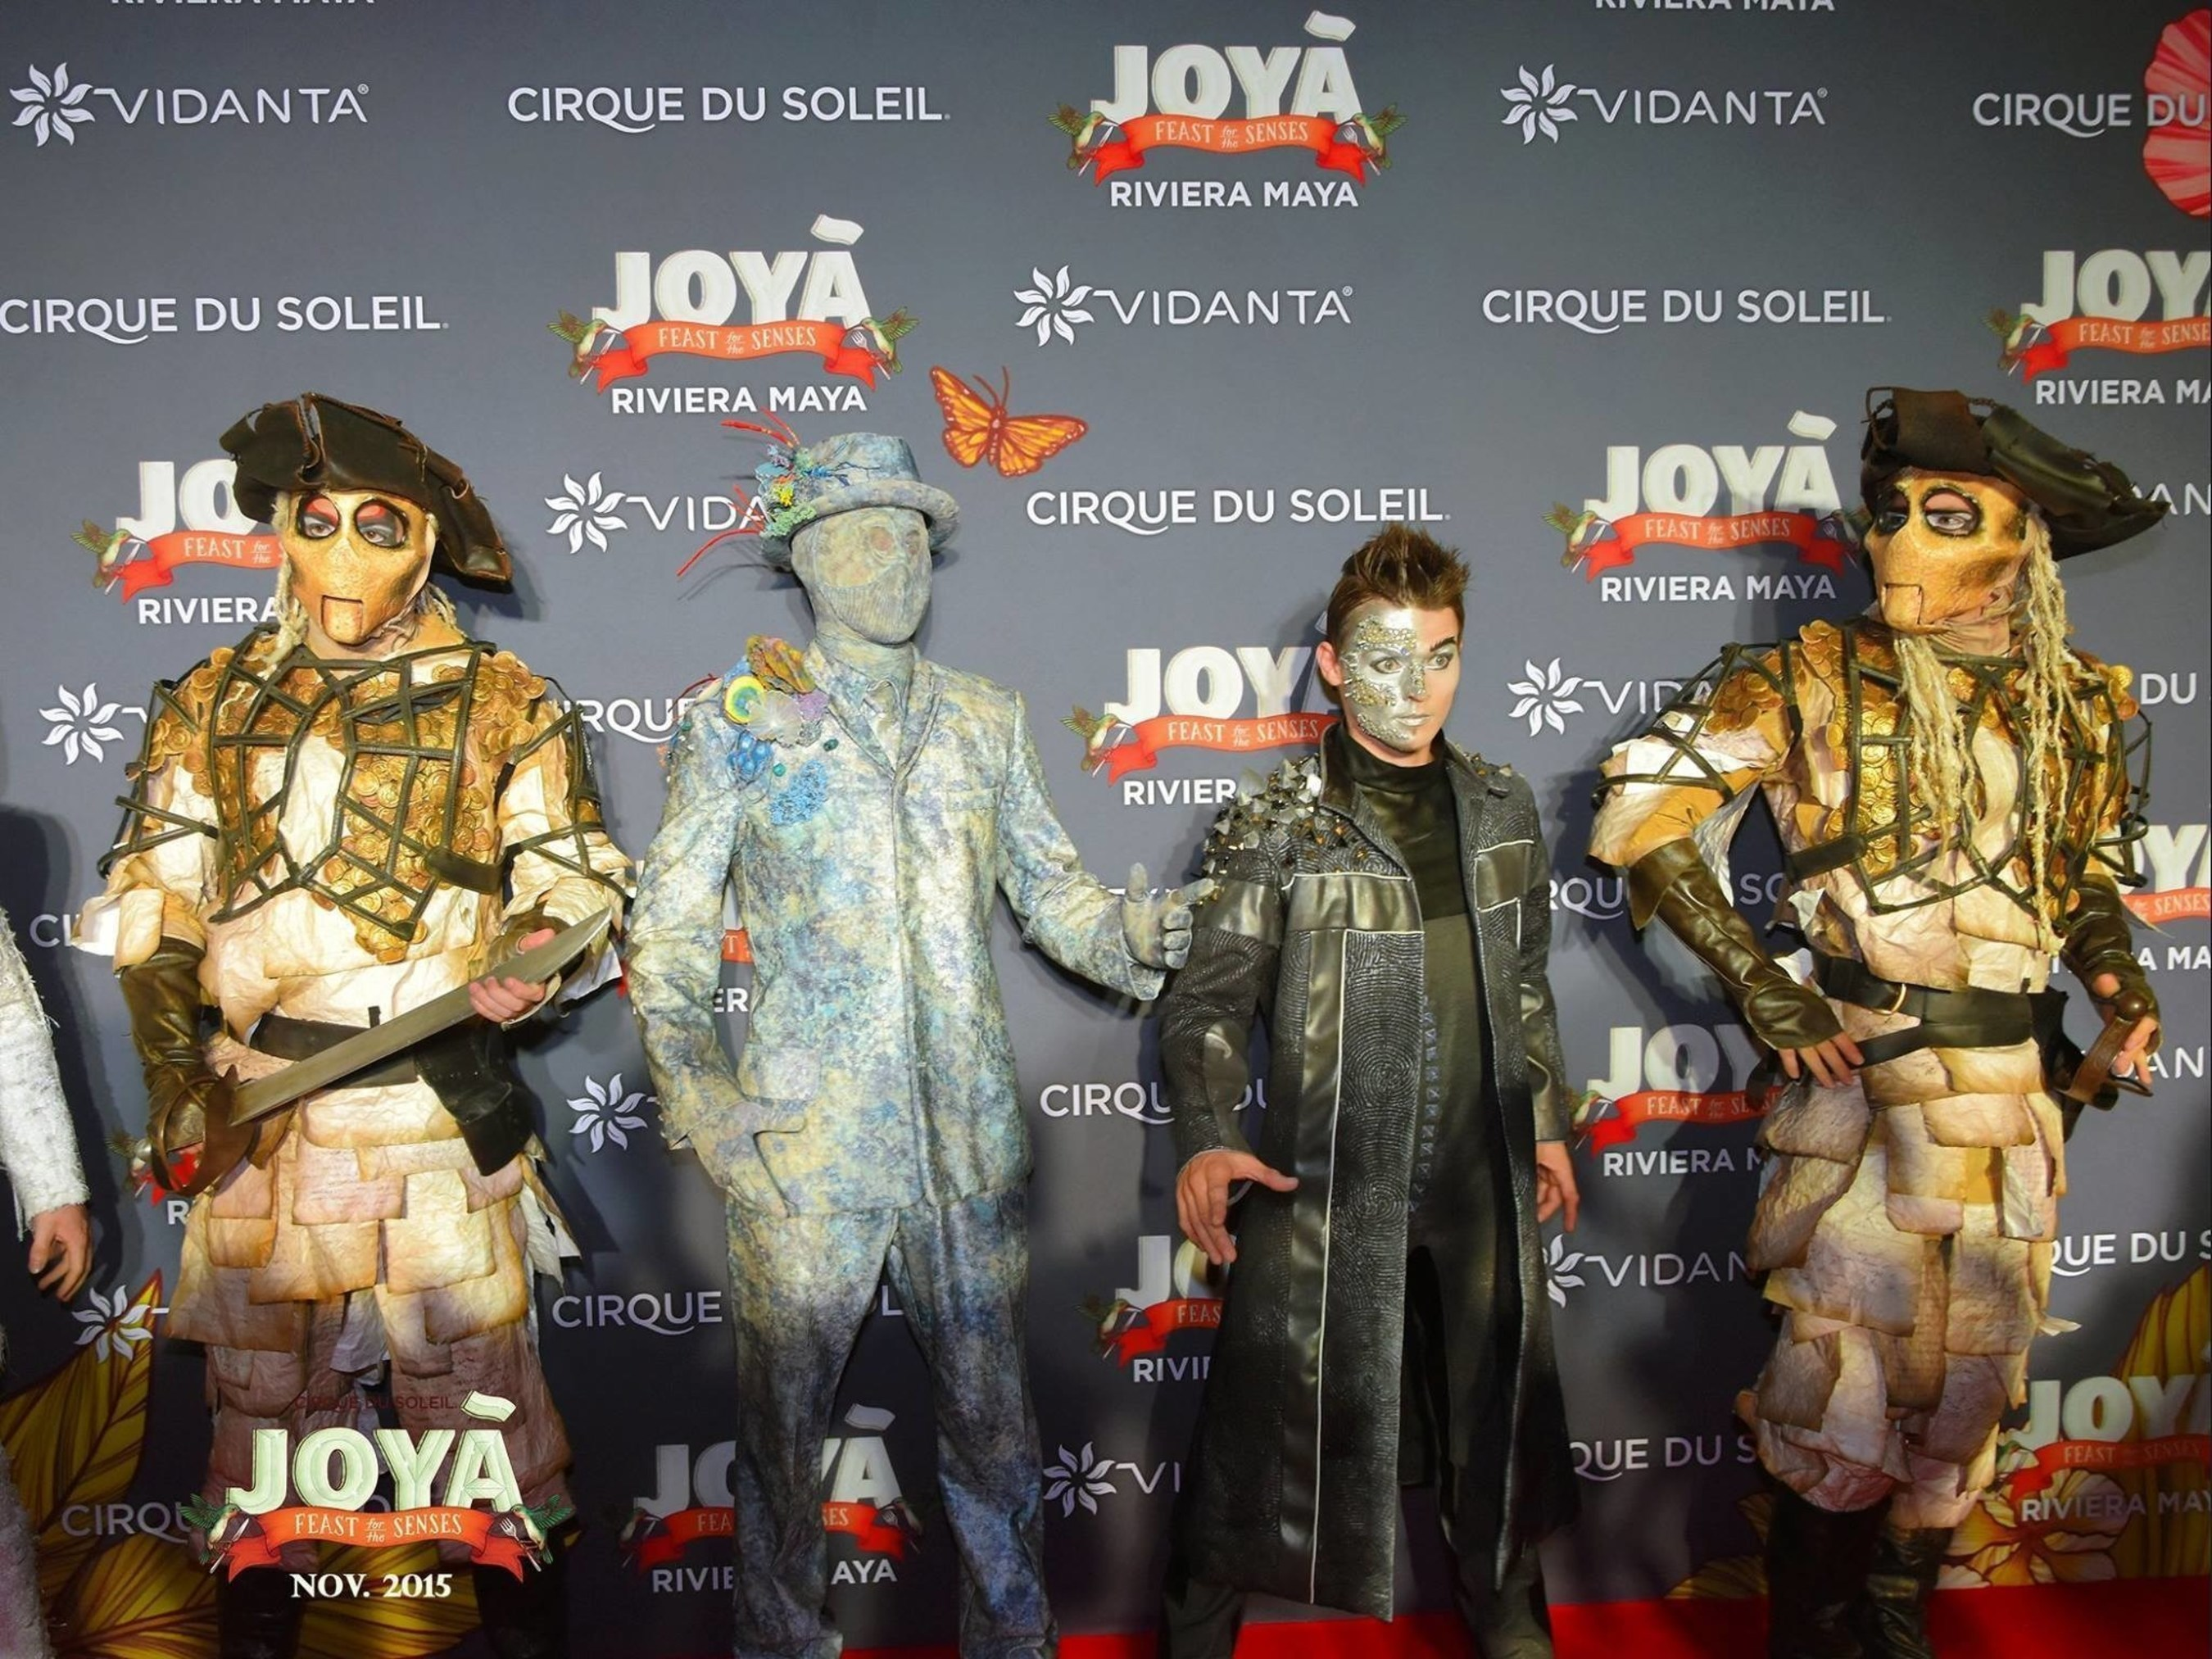 Members of the JOYA cast walk the red carpet at the anniversary celebration.